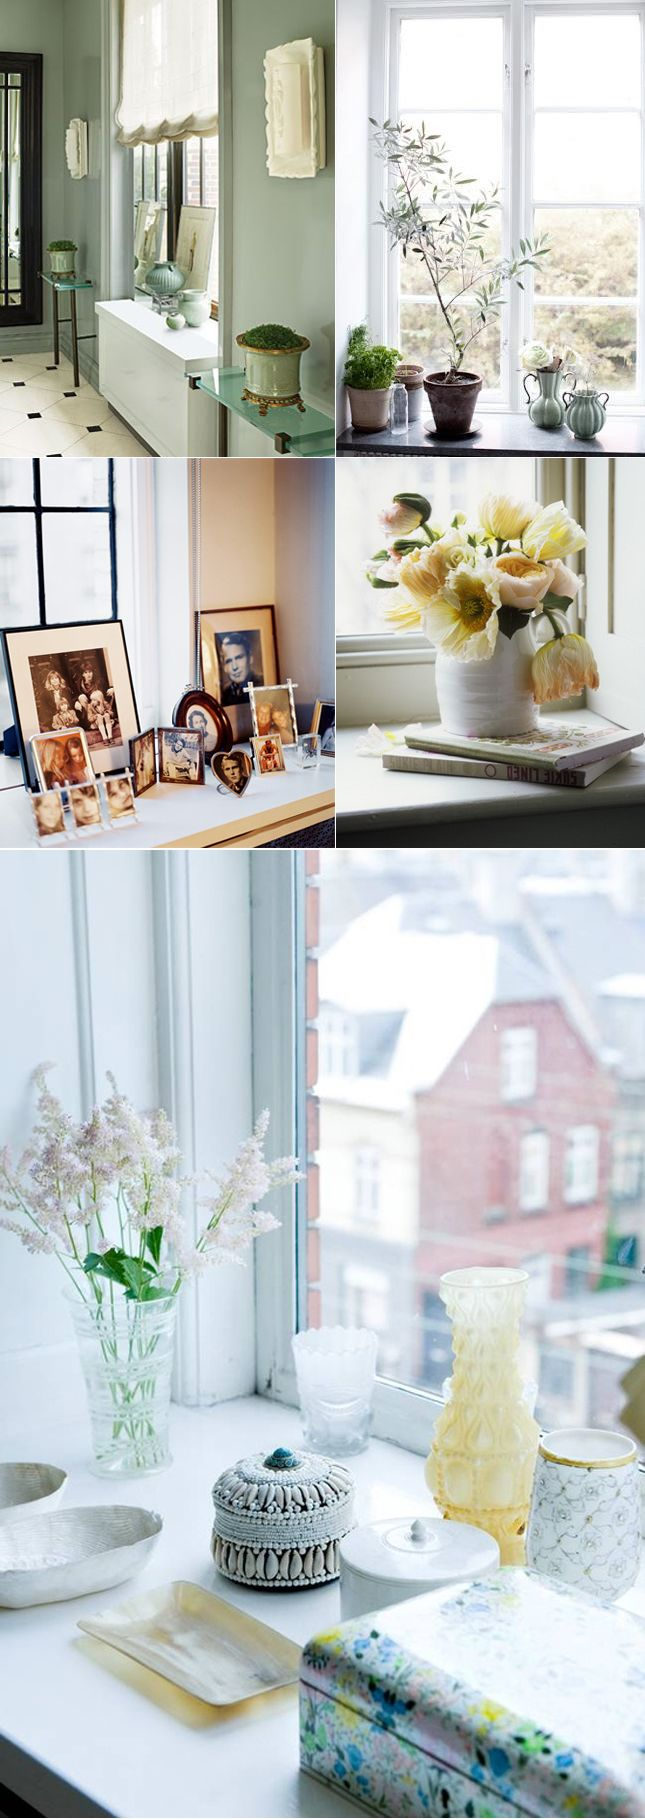 Styling inspiration for the windowsill